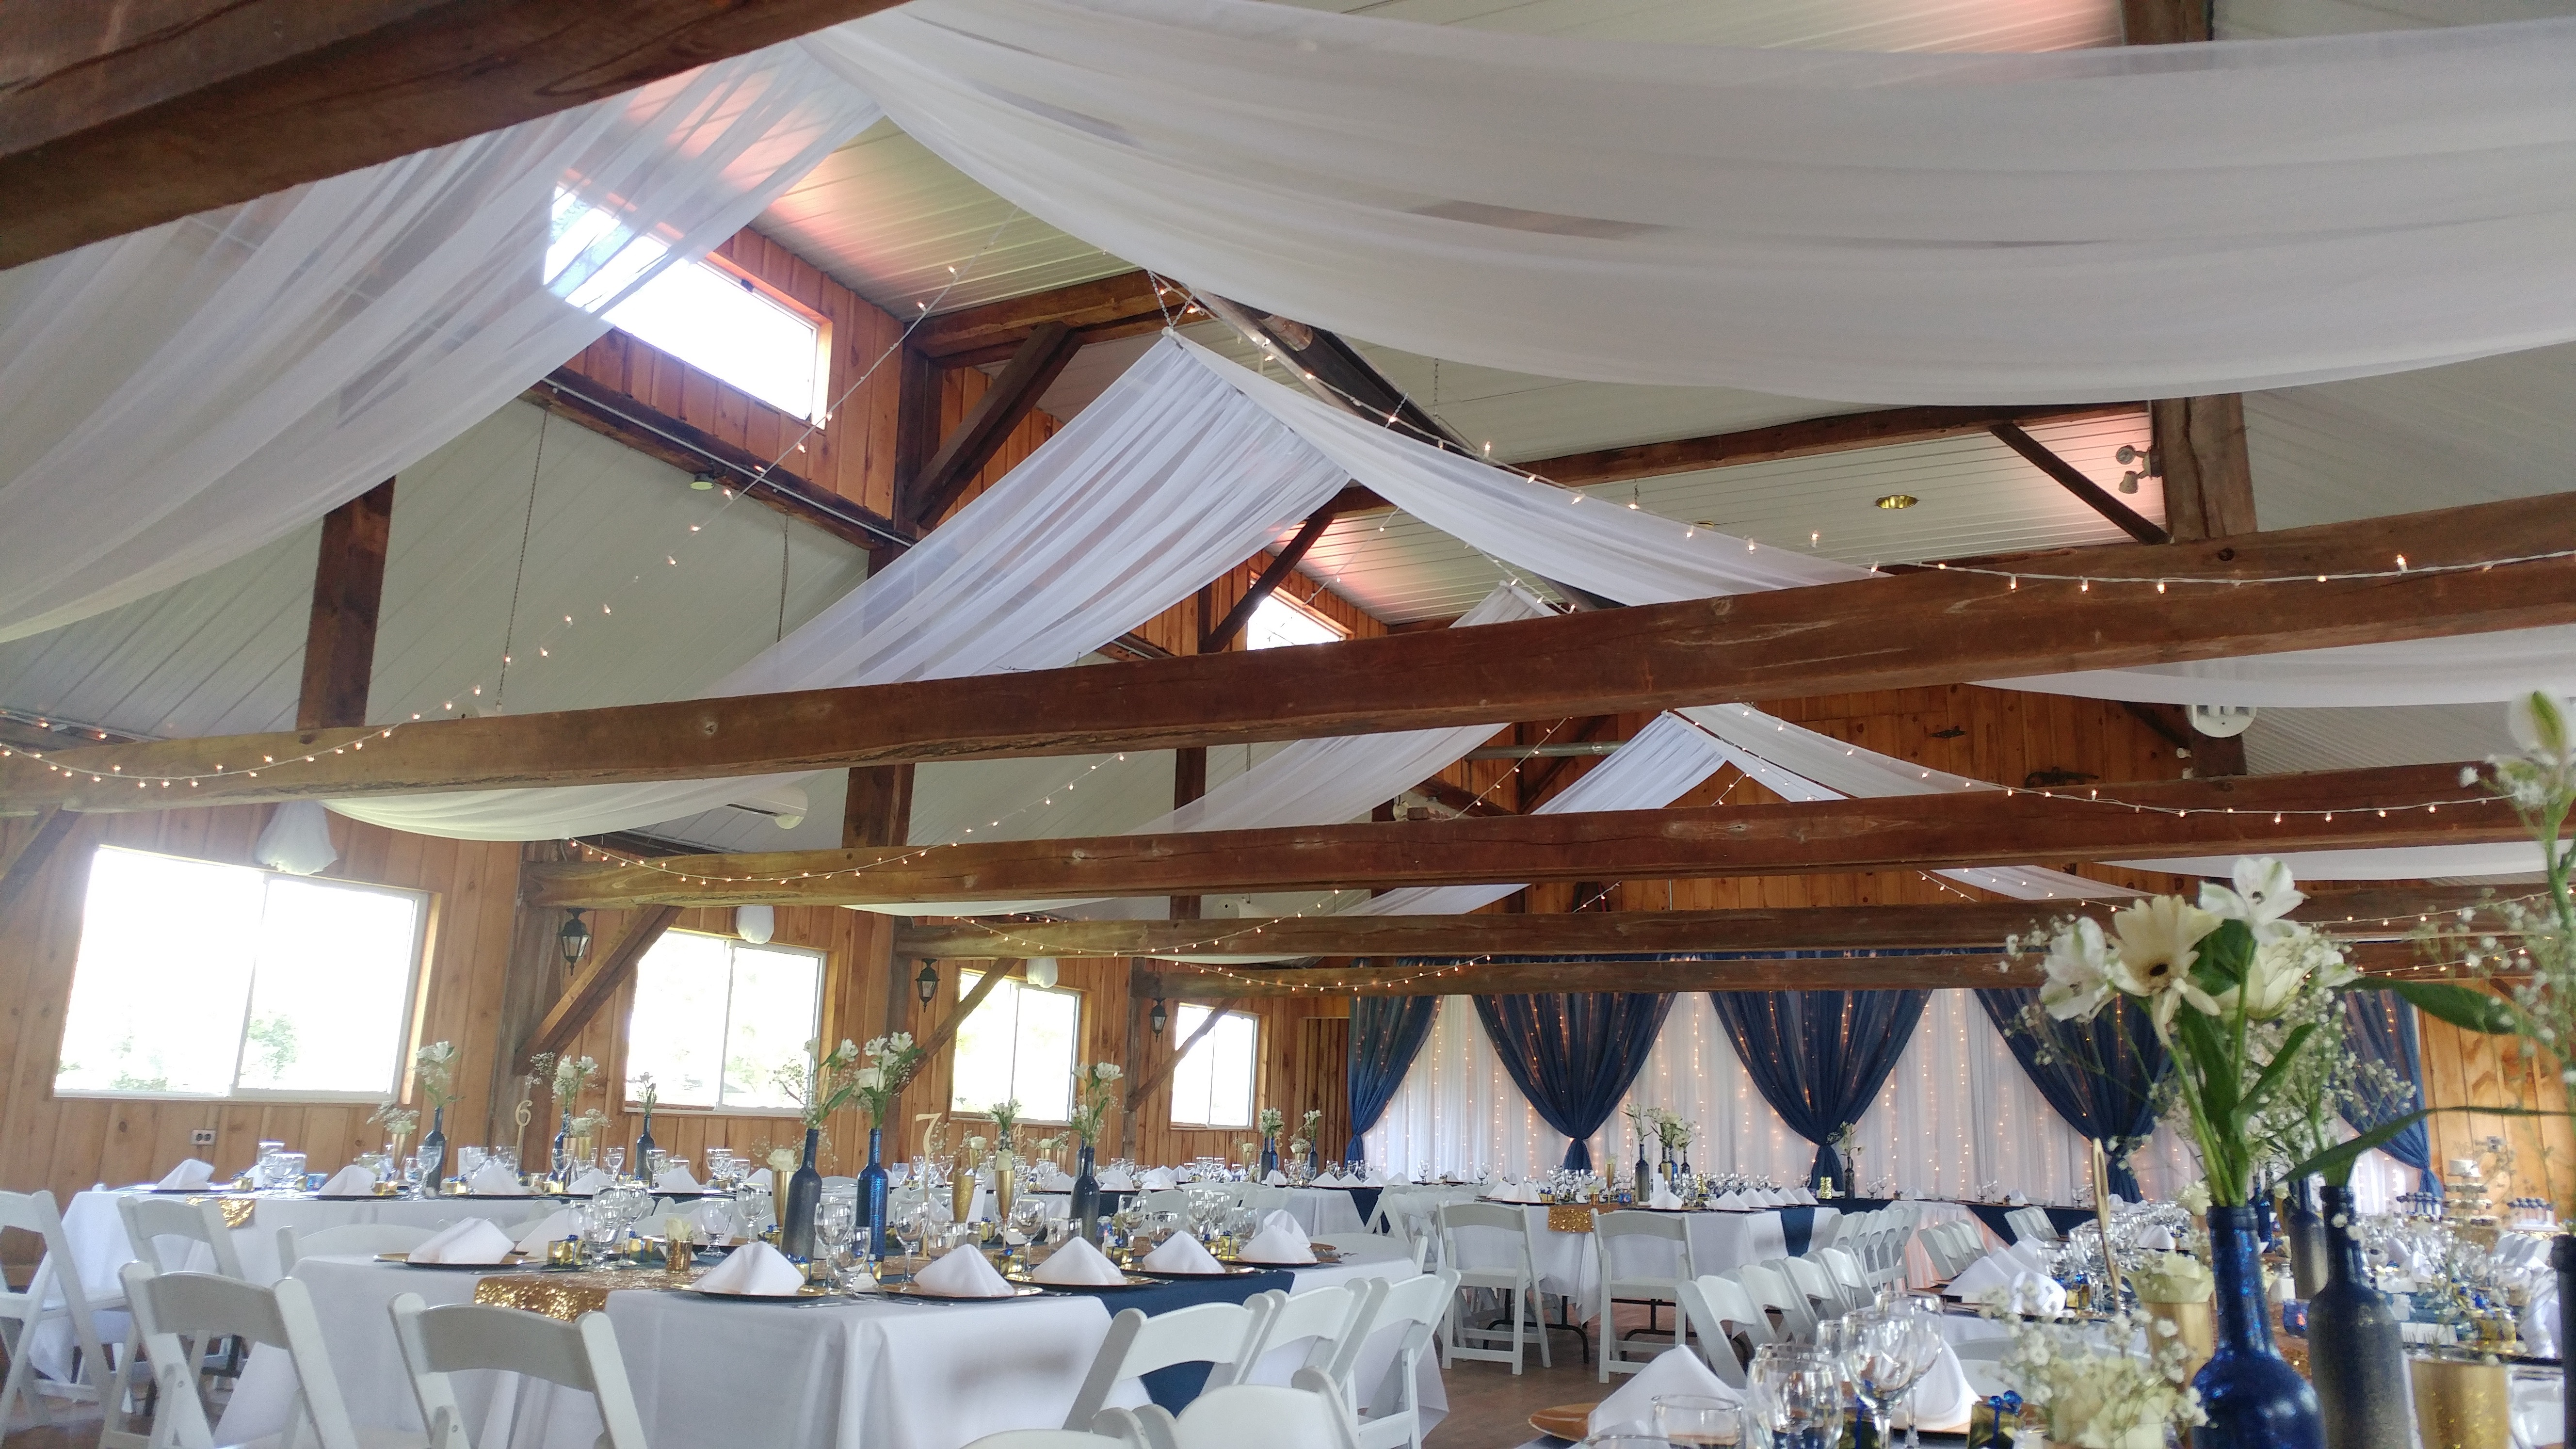 Ceiling Drape & Lights